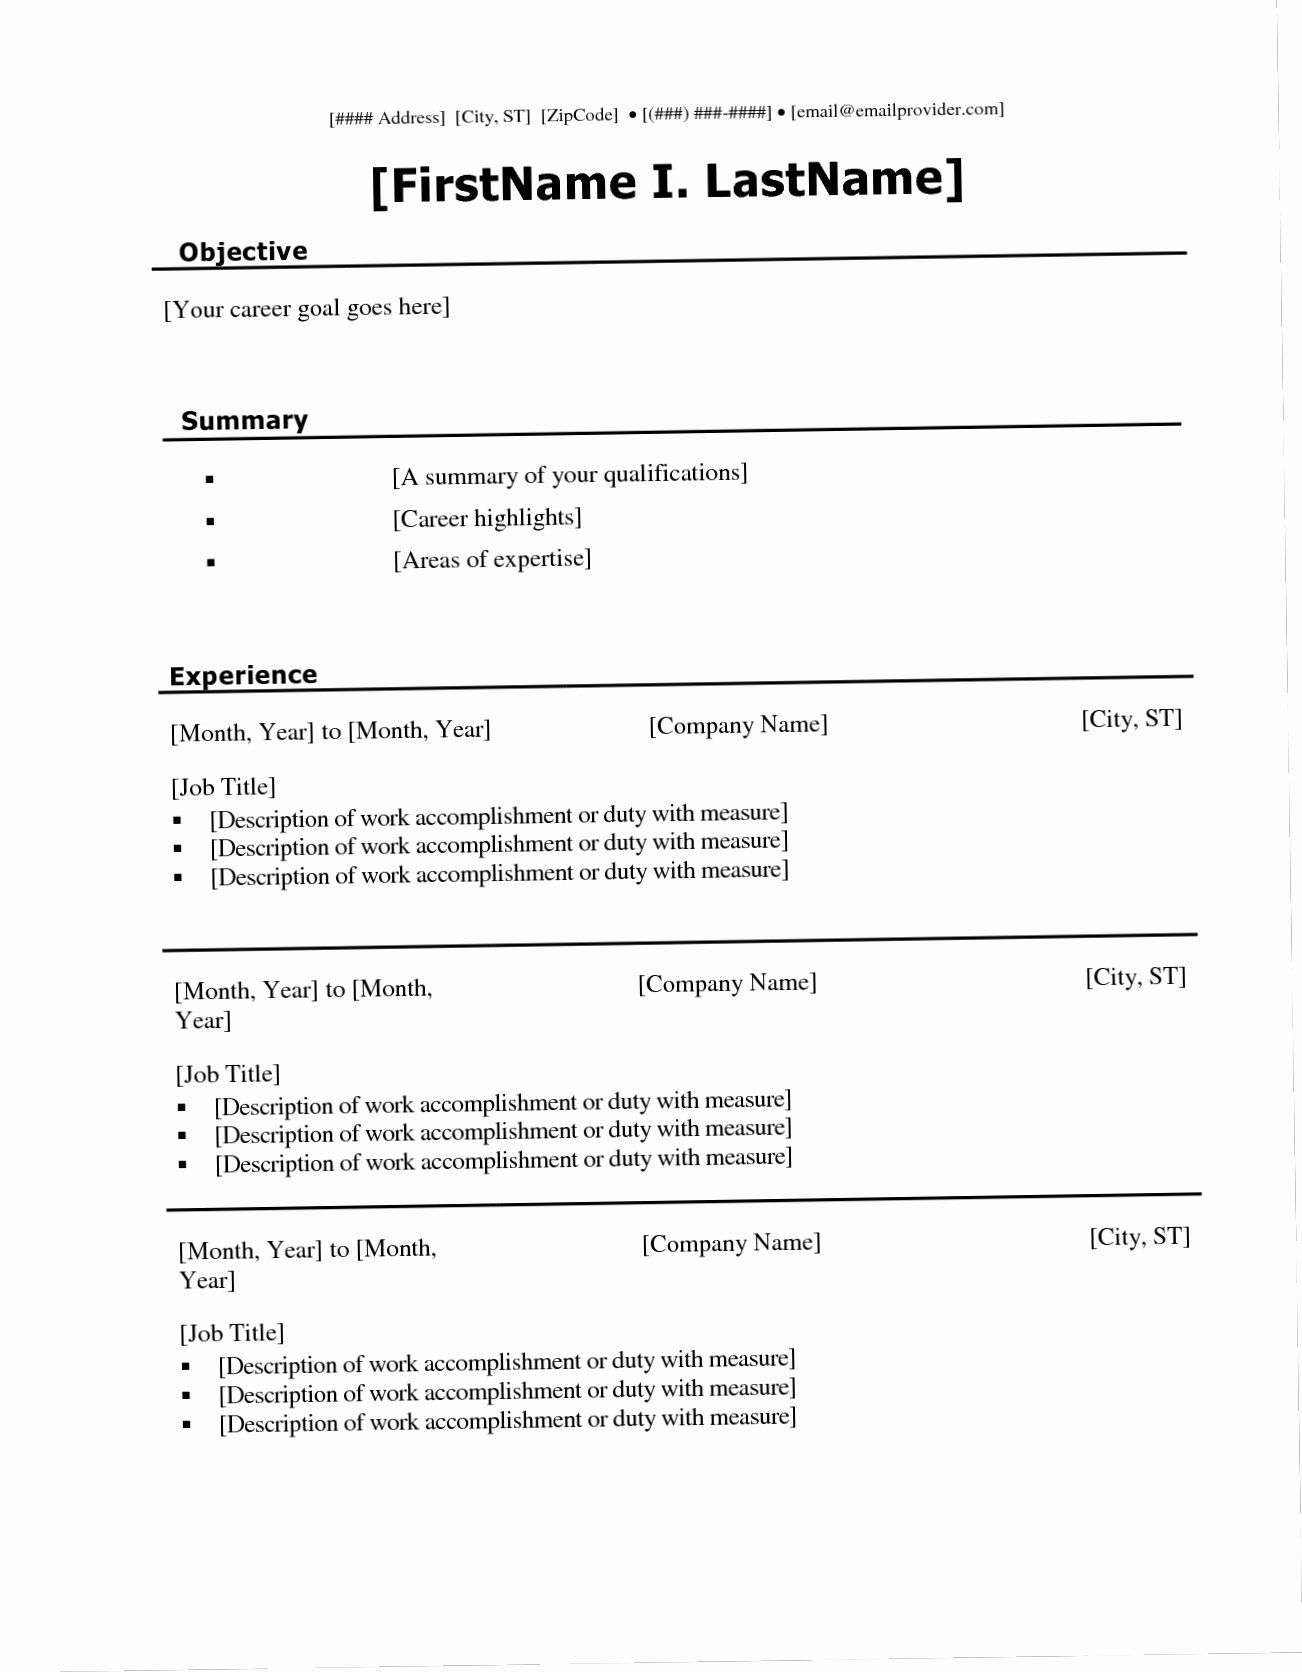 030 Student Resume Templates Microsoft Word Fill Ine with